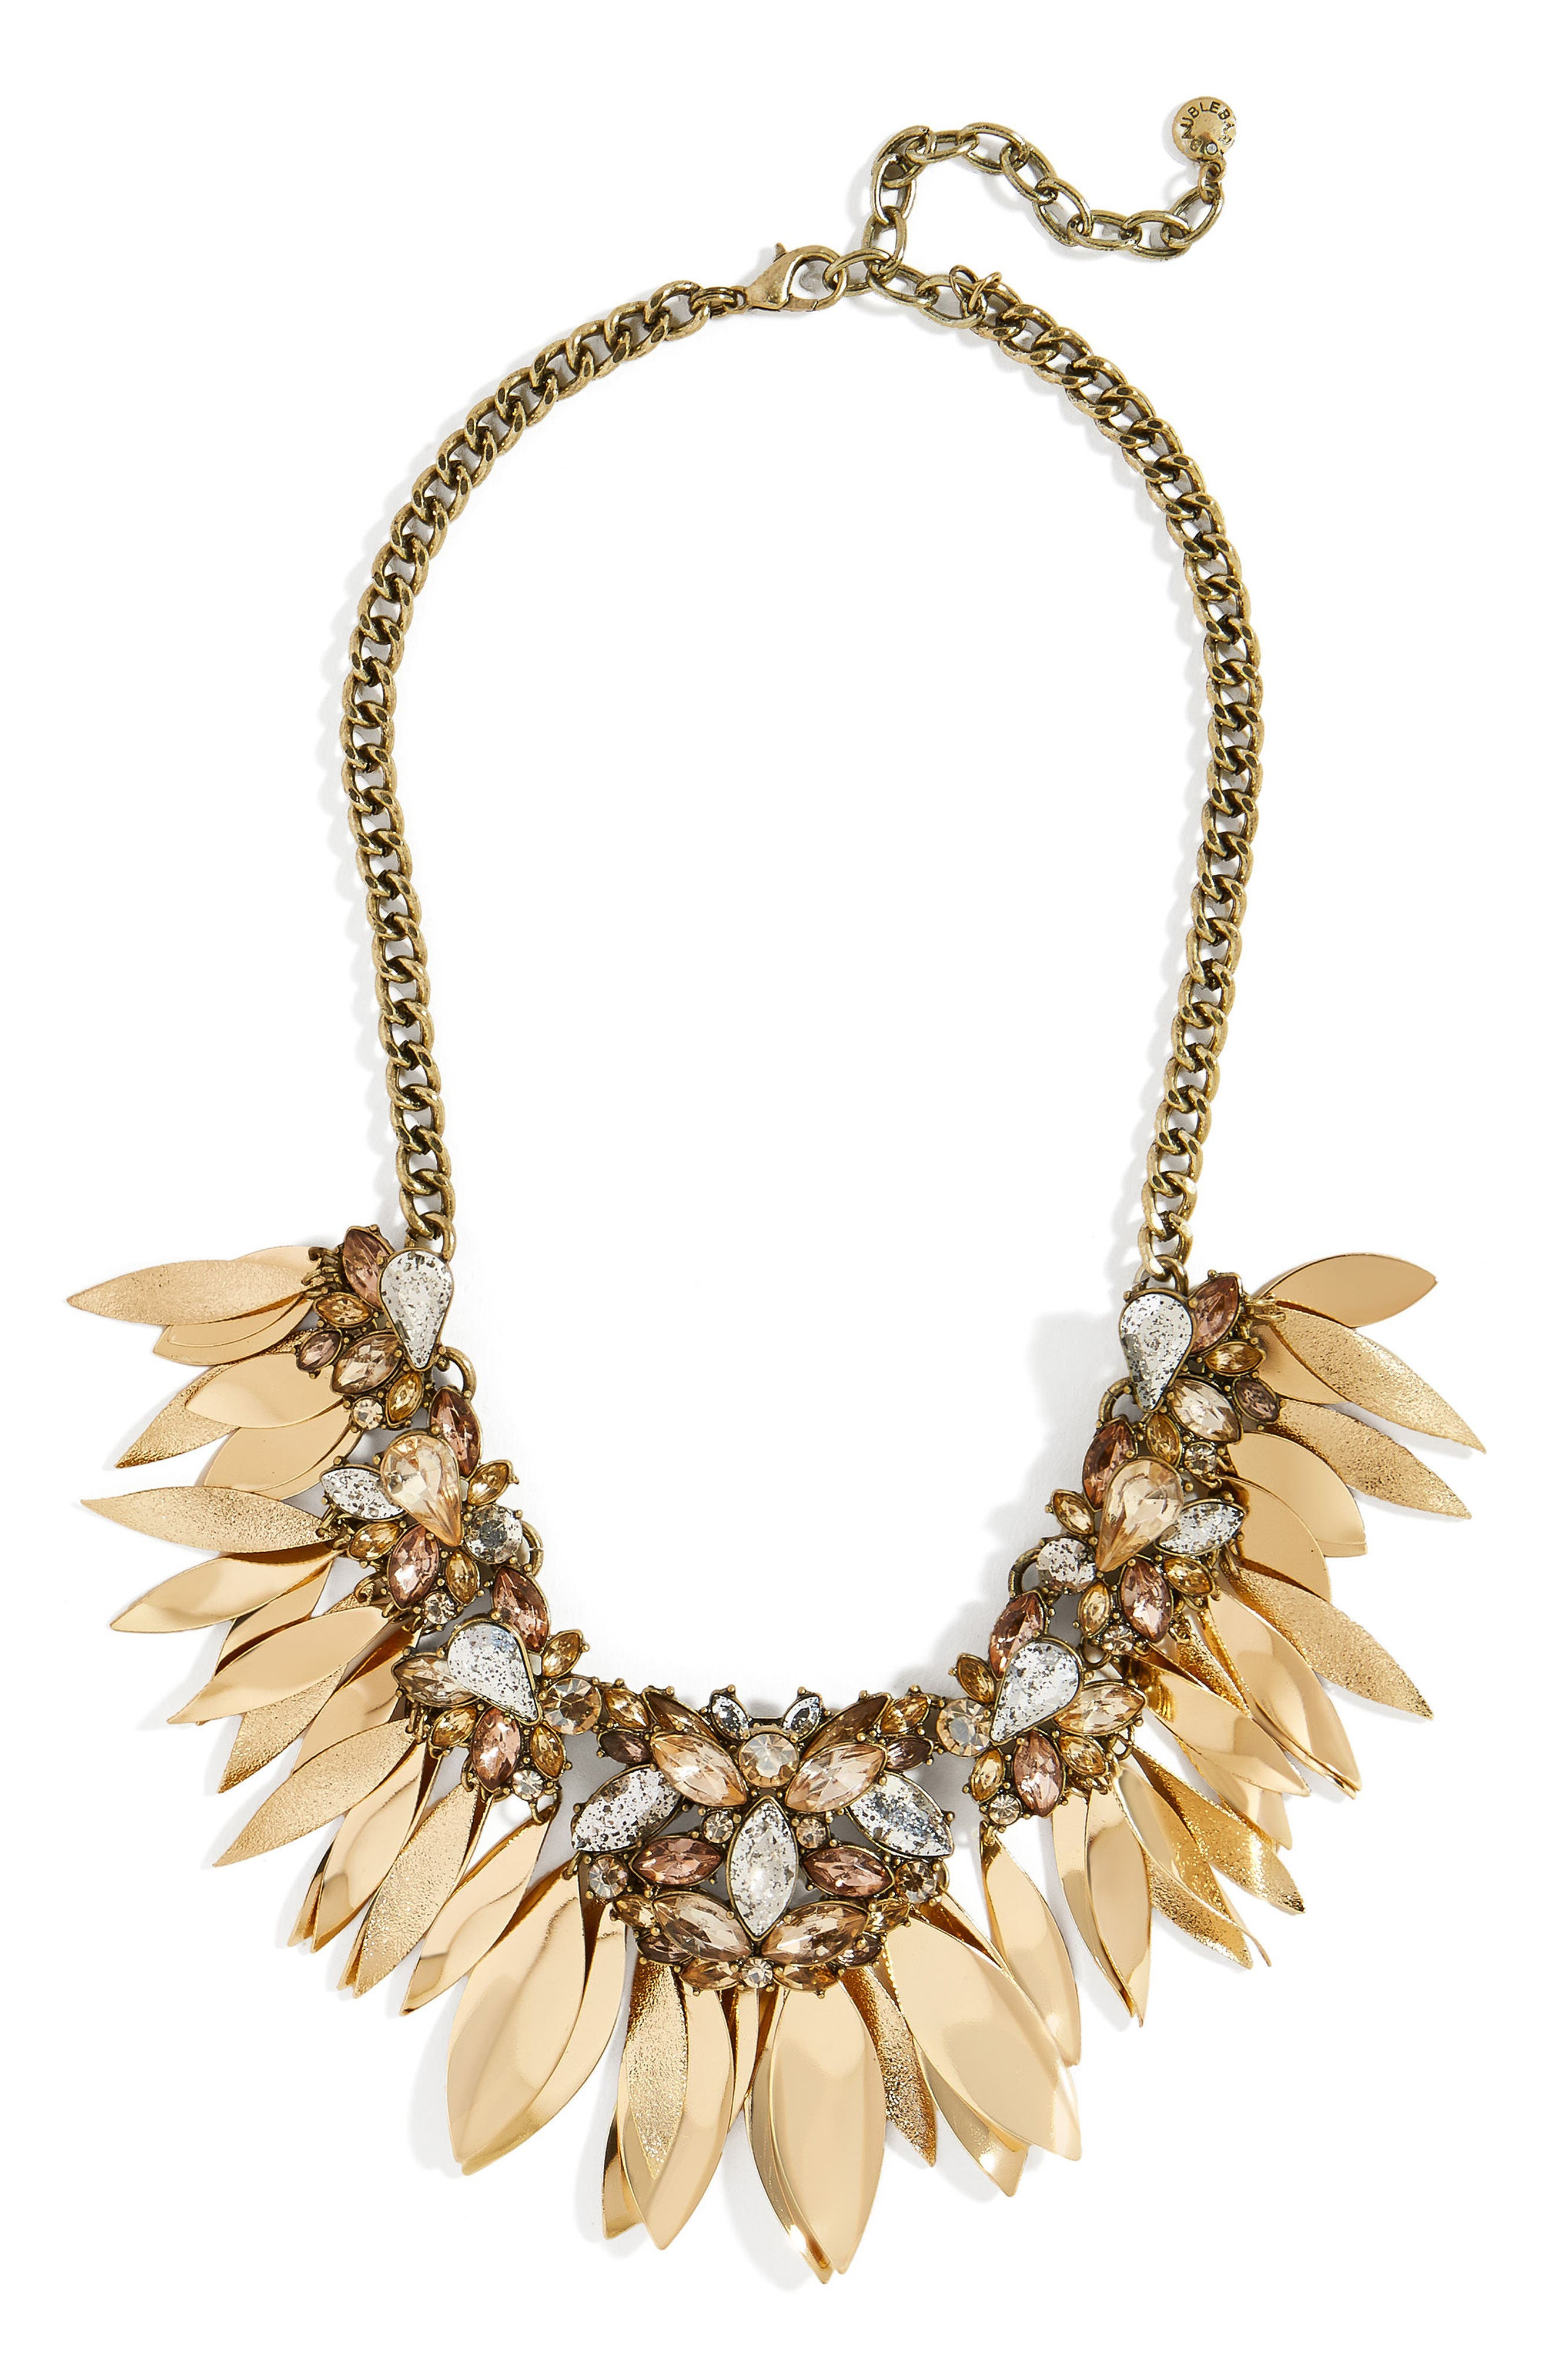 Callisto Statement Necklace,                             Main thumbnail 1, color,                             020